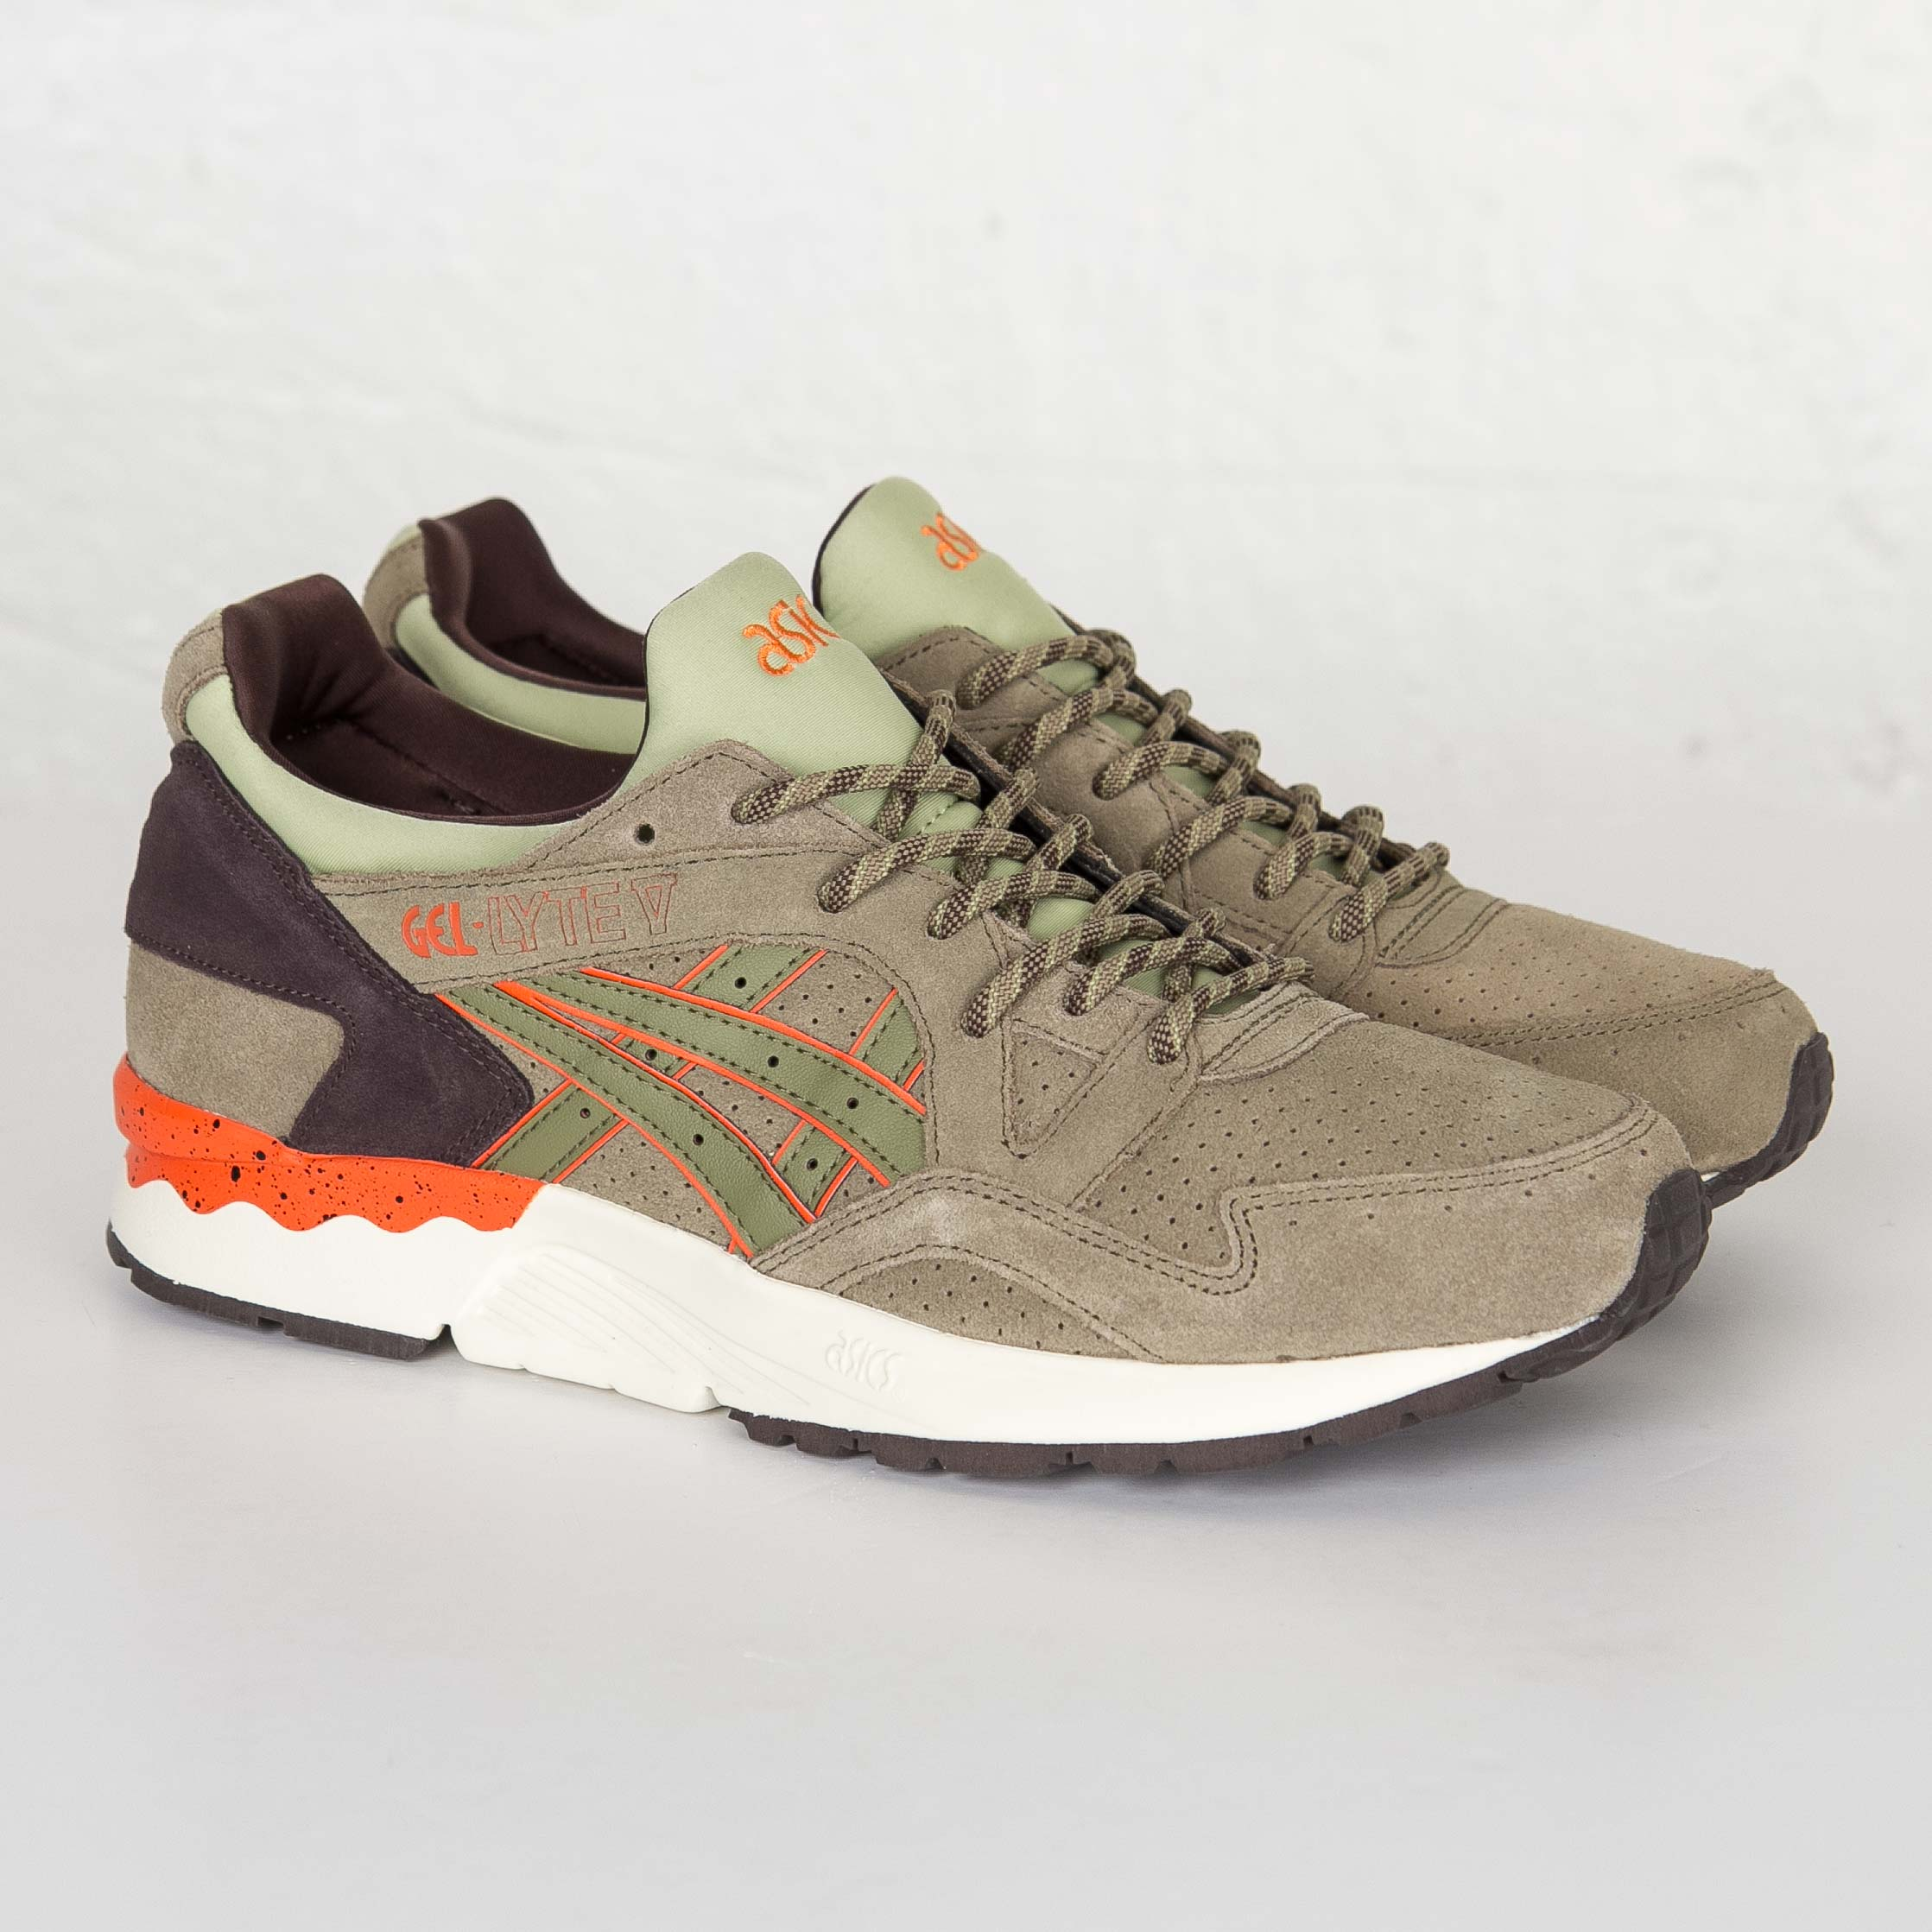 Asics Gel Saga low